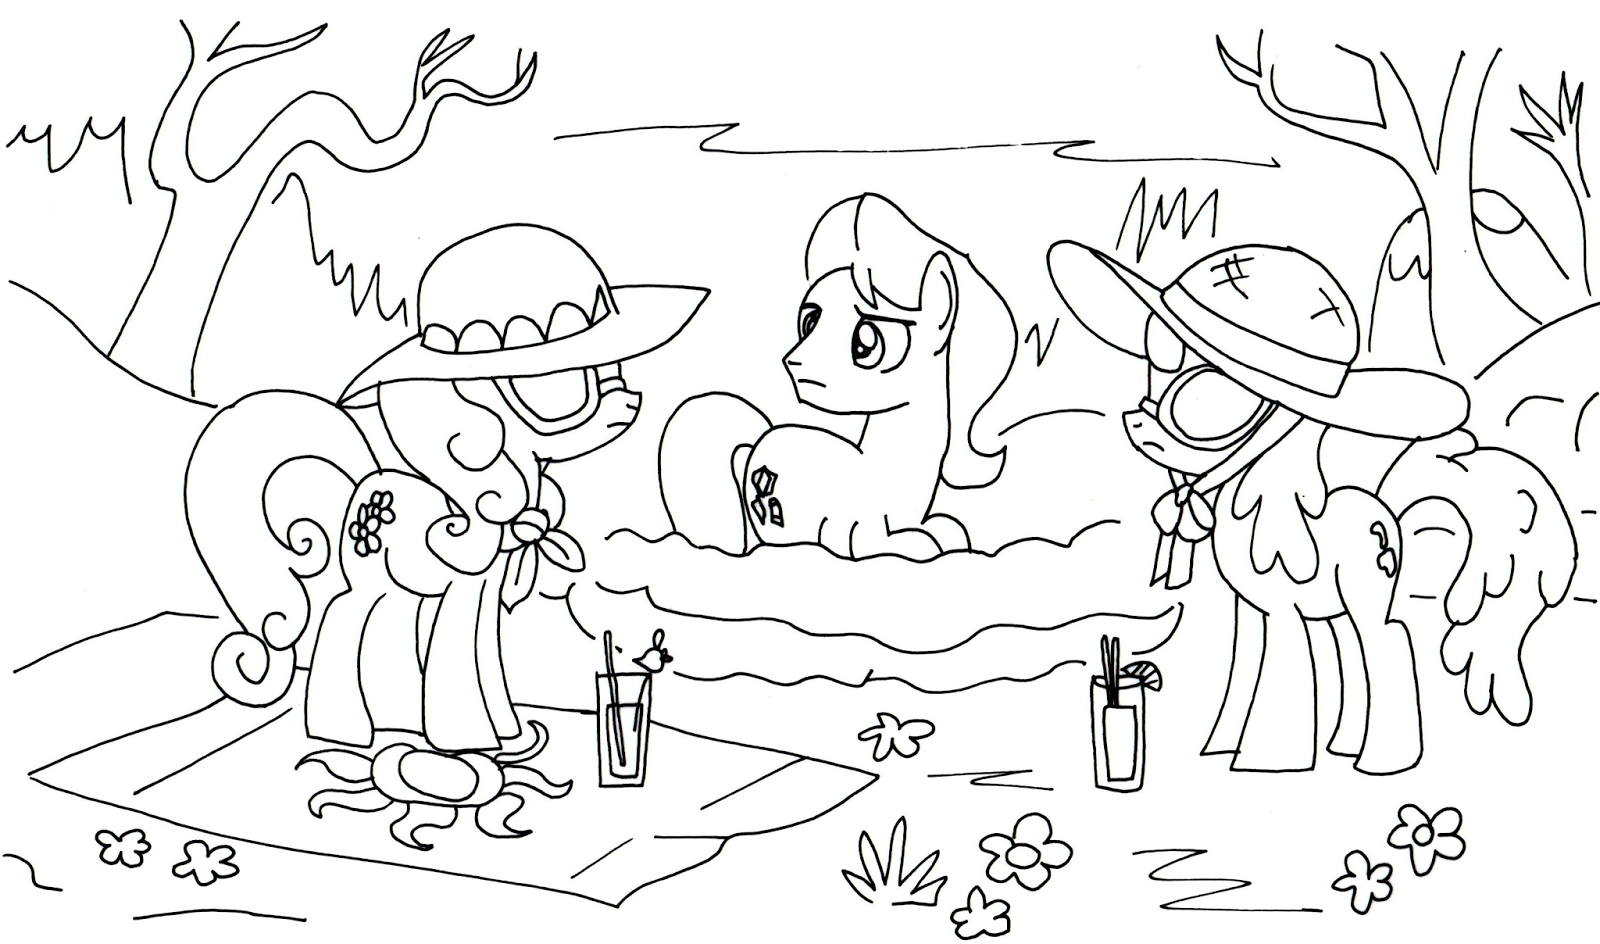 Free Printable My Little Pony Coloring Pages Cherry Berry Caramel Daisy Little Pony Coloring Page